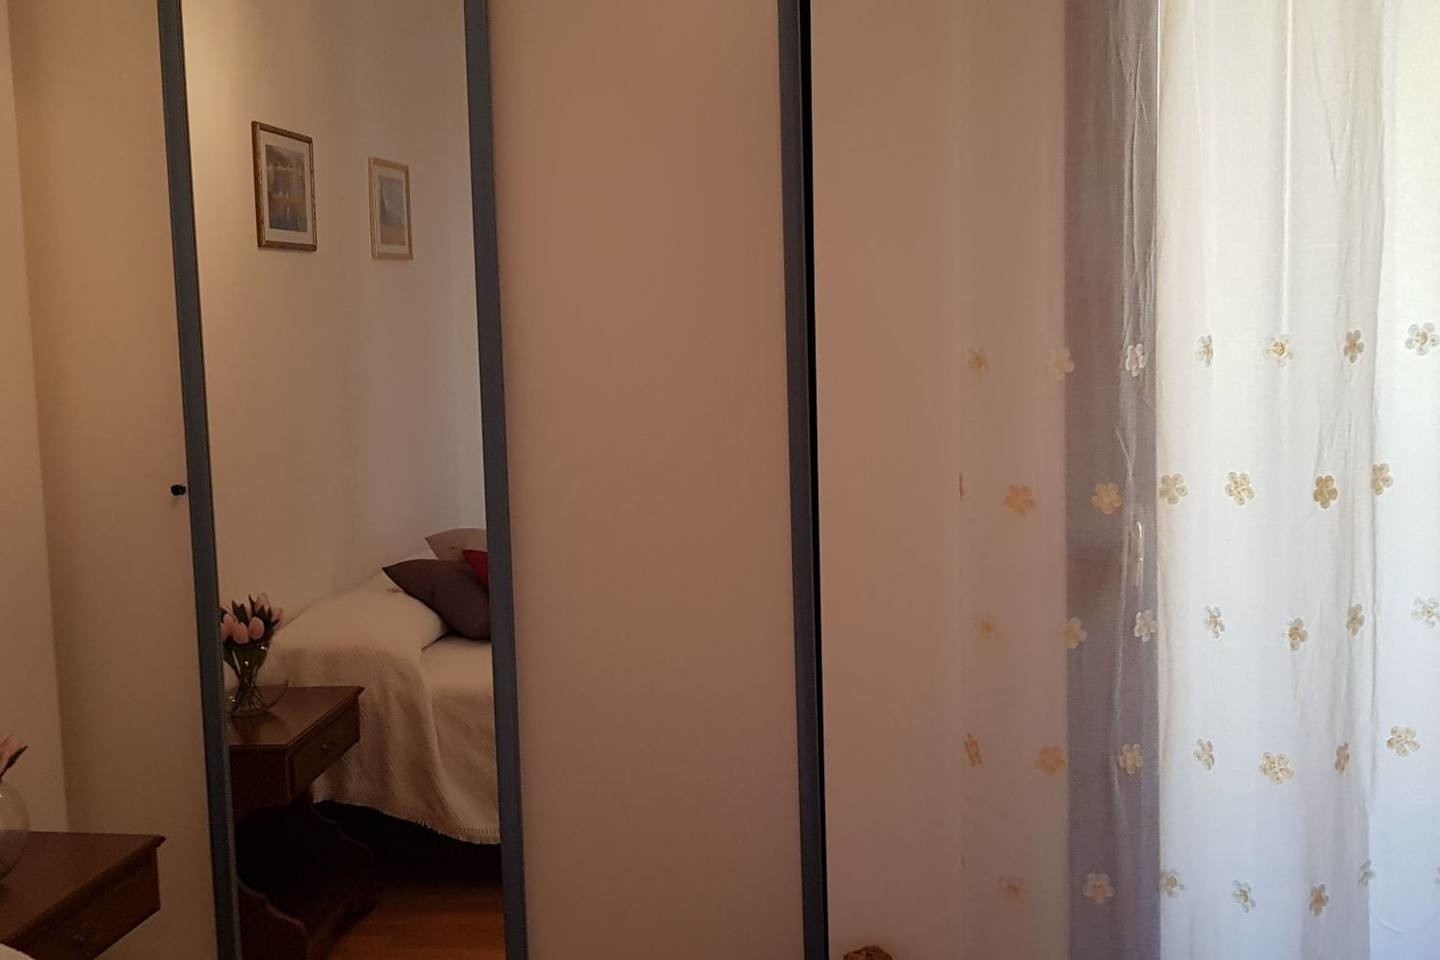 Armadio Camera Letto Matrimoniale.Looking For Roommate To Live In This Gorgeous 3 Room Flat In Lecce